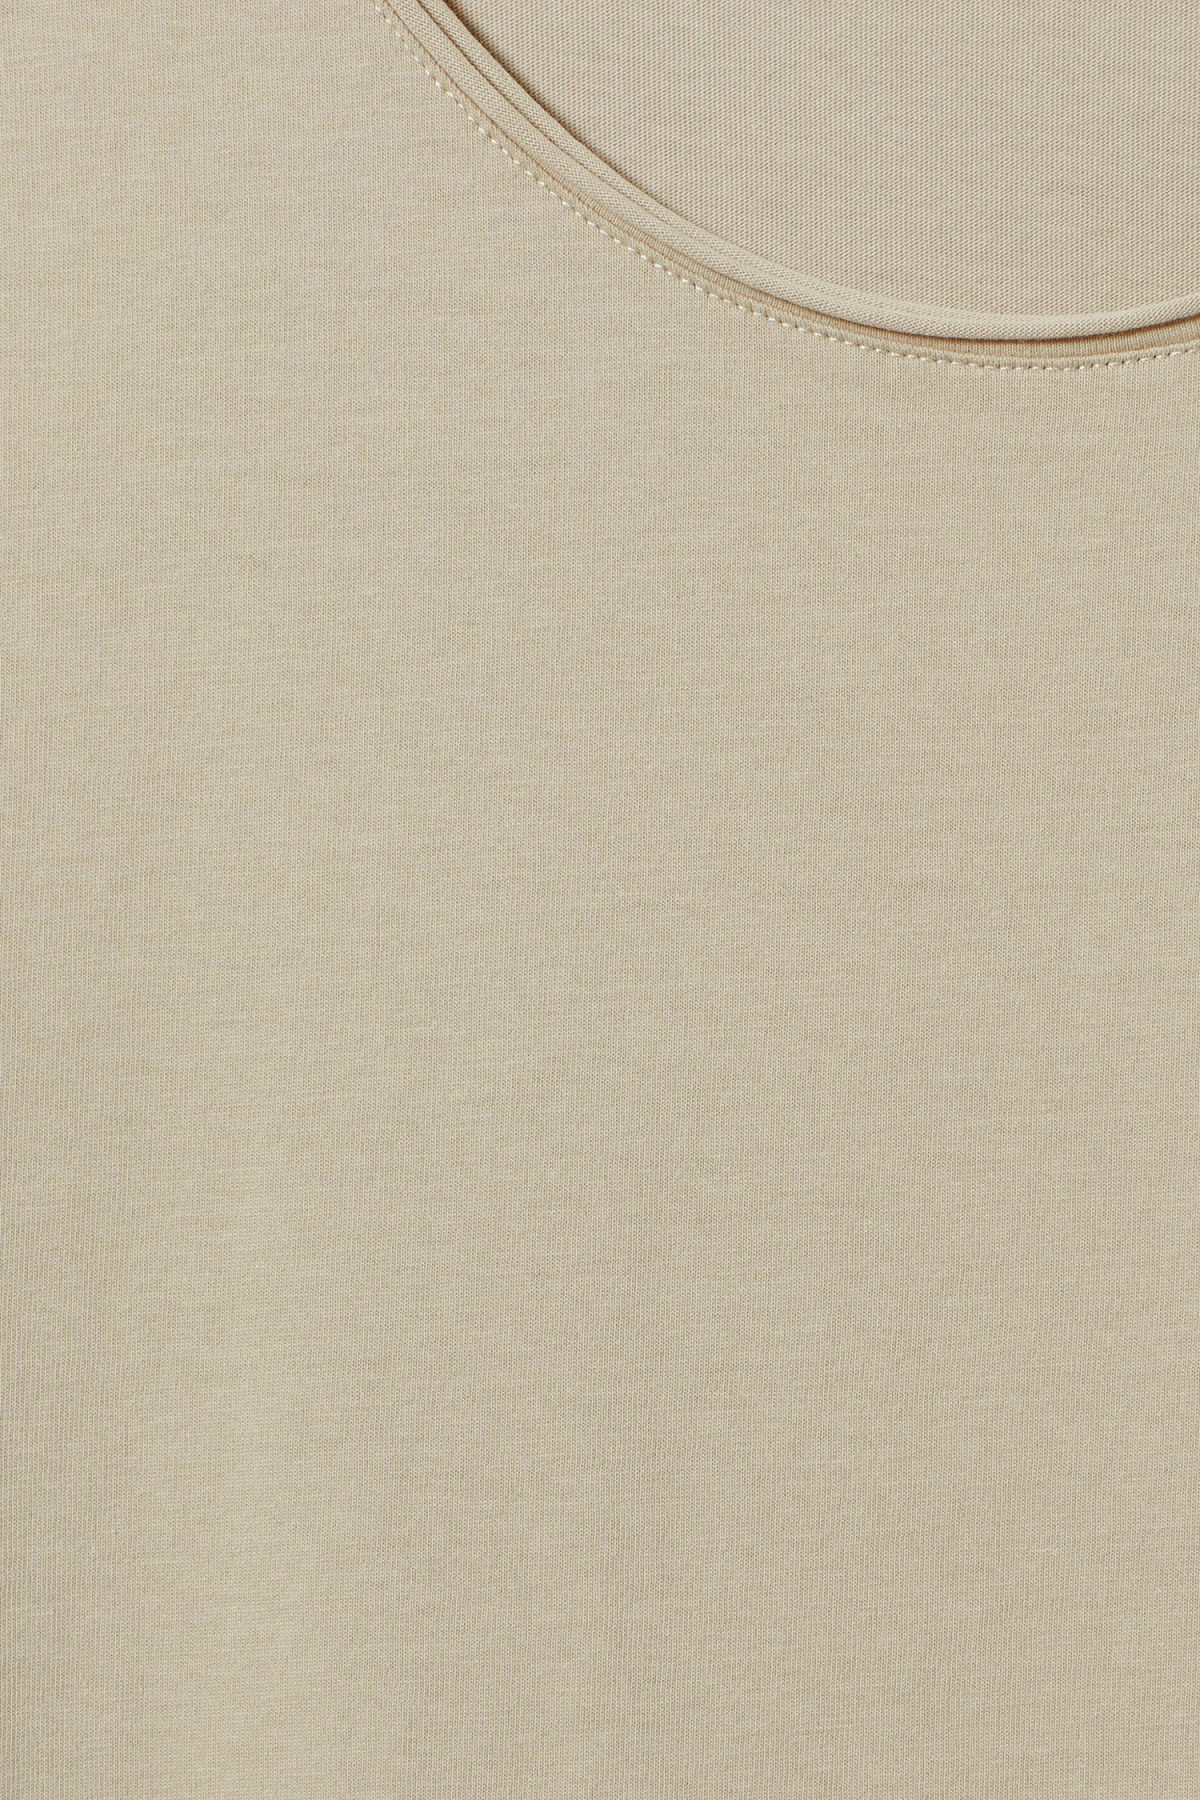 Detailed image of Weekday dark t-shirt in beige